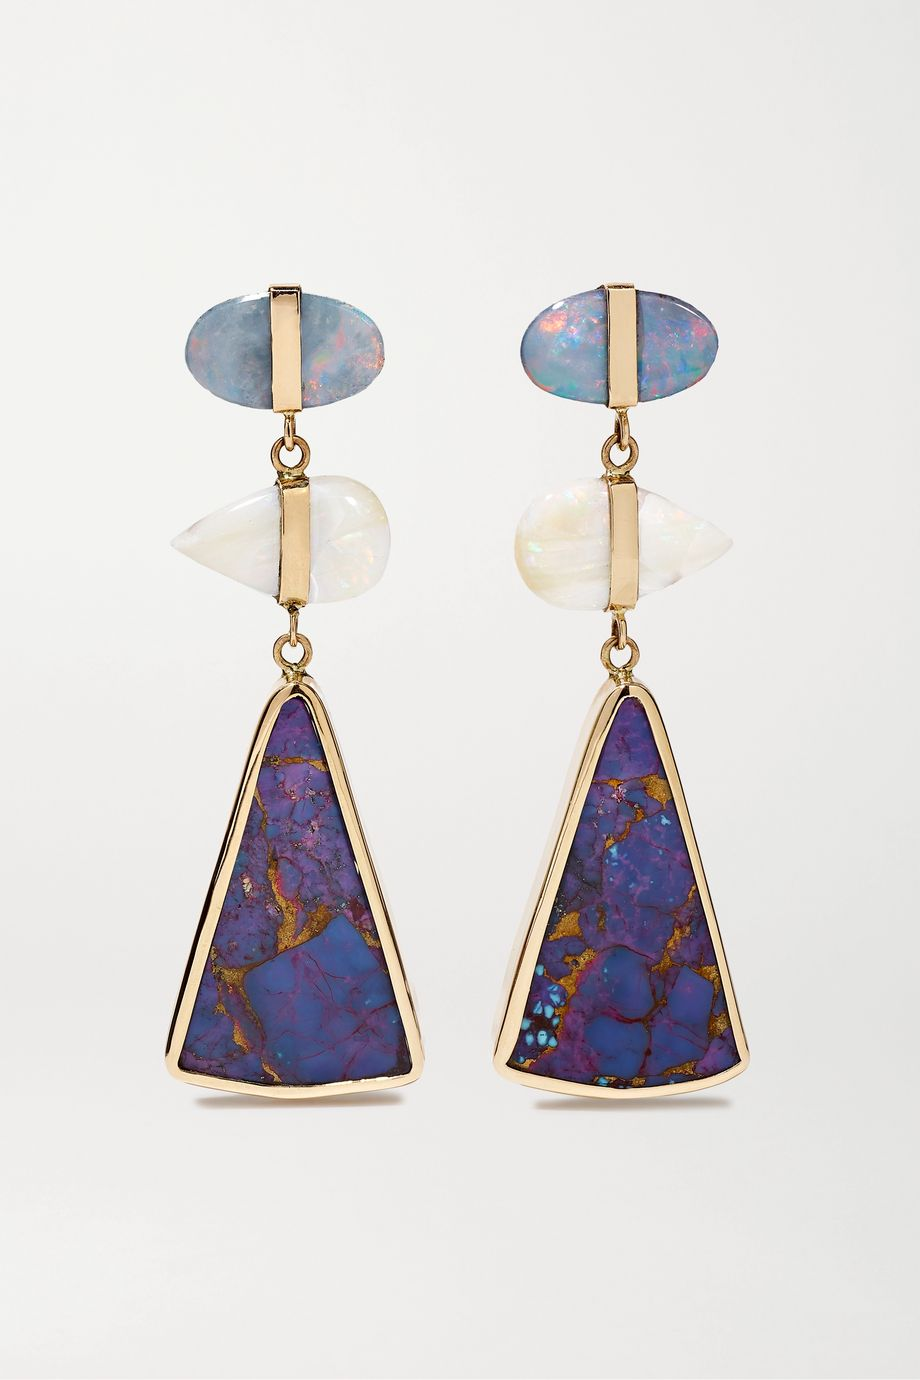 Melissa Joy Manning 14-karat gold, turquoise and opal earrings